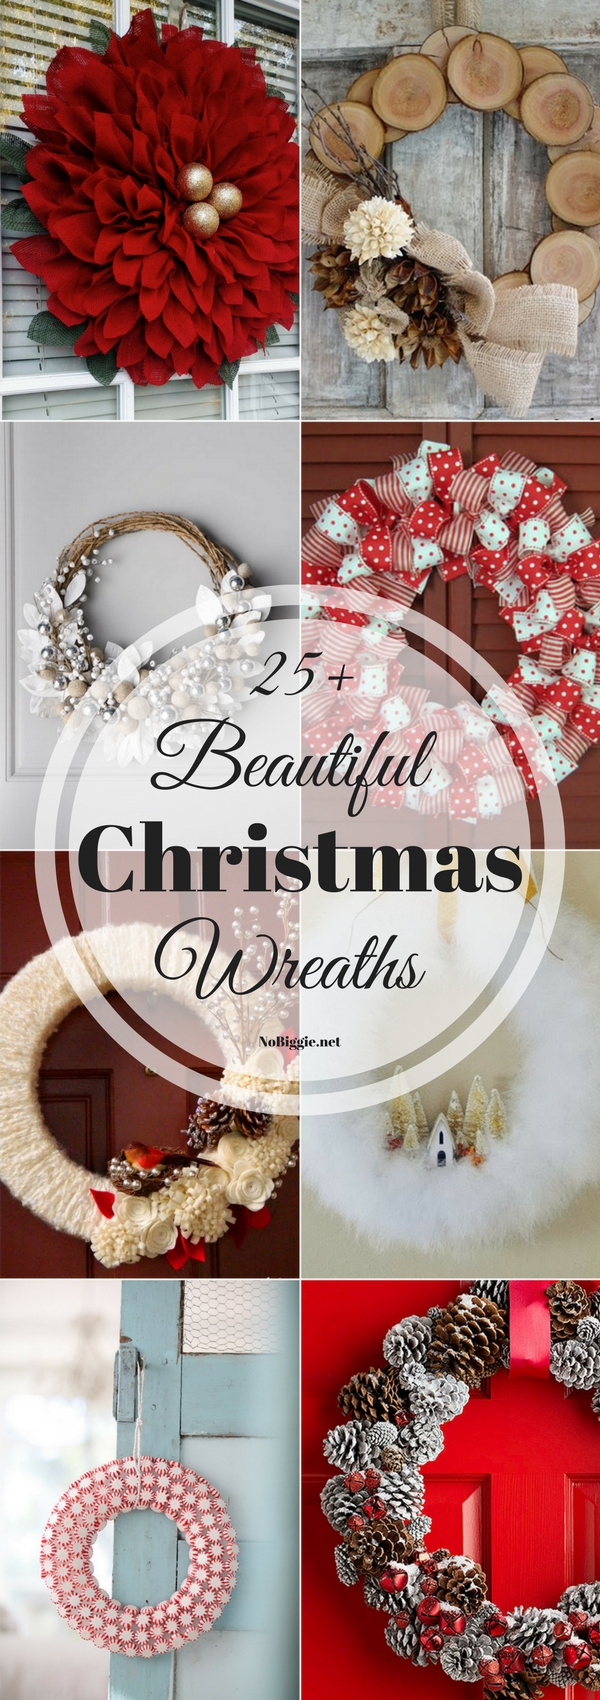 25+ Beautiful Christmas Wreaths | NoBiggie.net